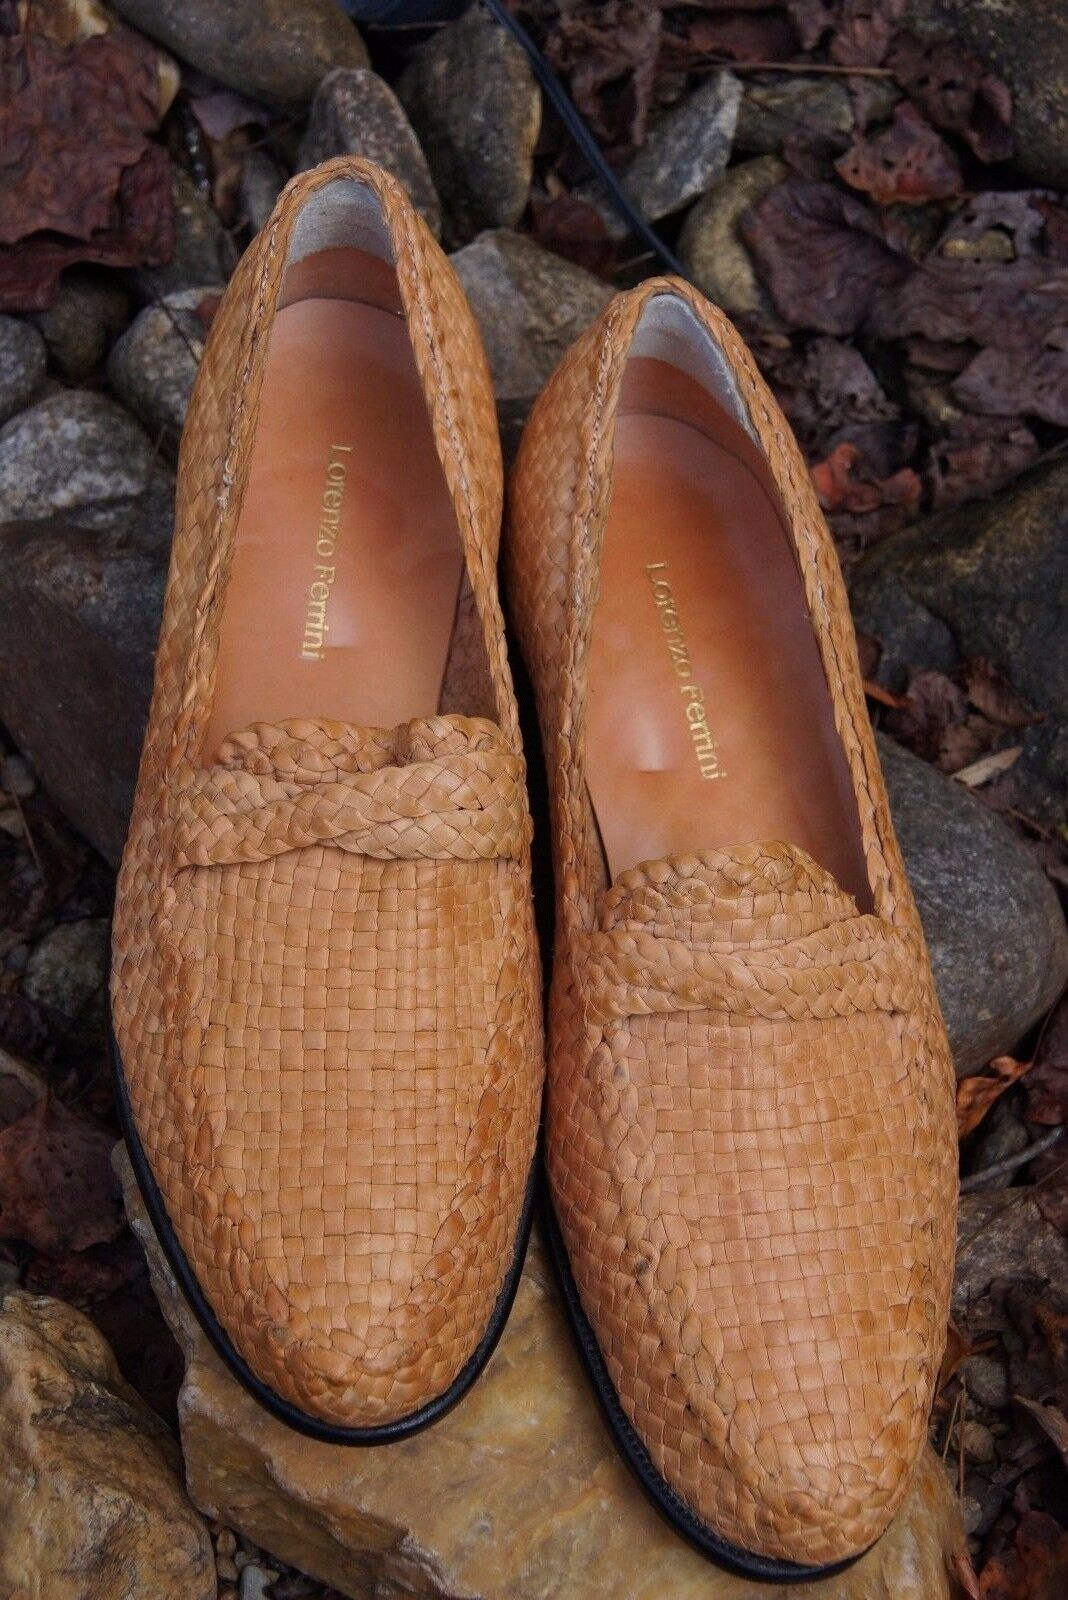 Lorenzo Ferrini Wheat color Fine Woven Leather Loafers, Slip-On shoes  Size 11